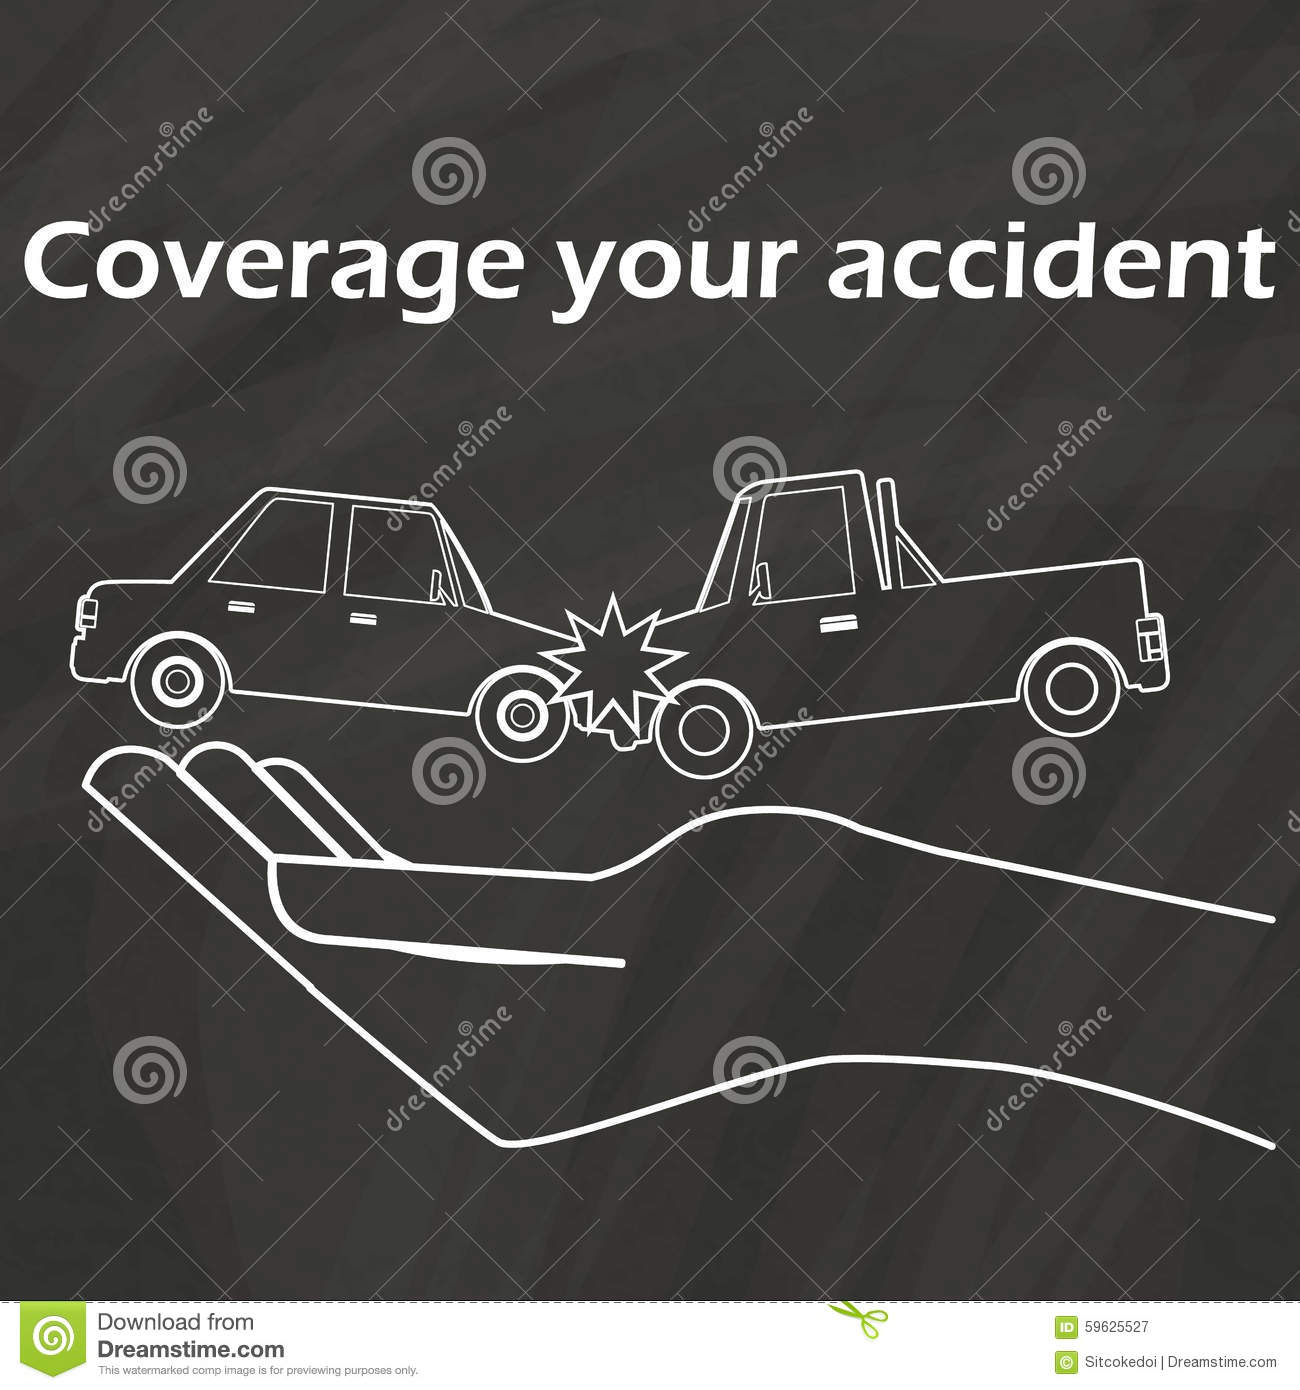 Car Crash On Hand To Draw With Chalk Stock Vector - Illustration of ...